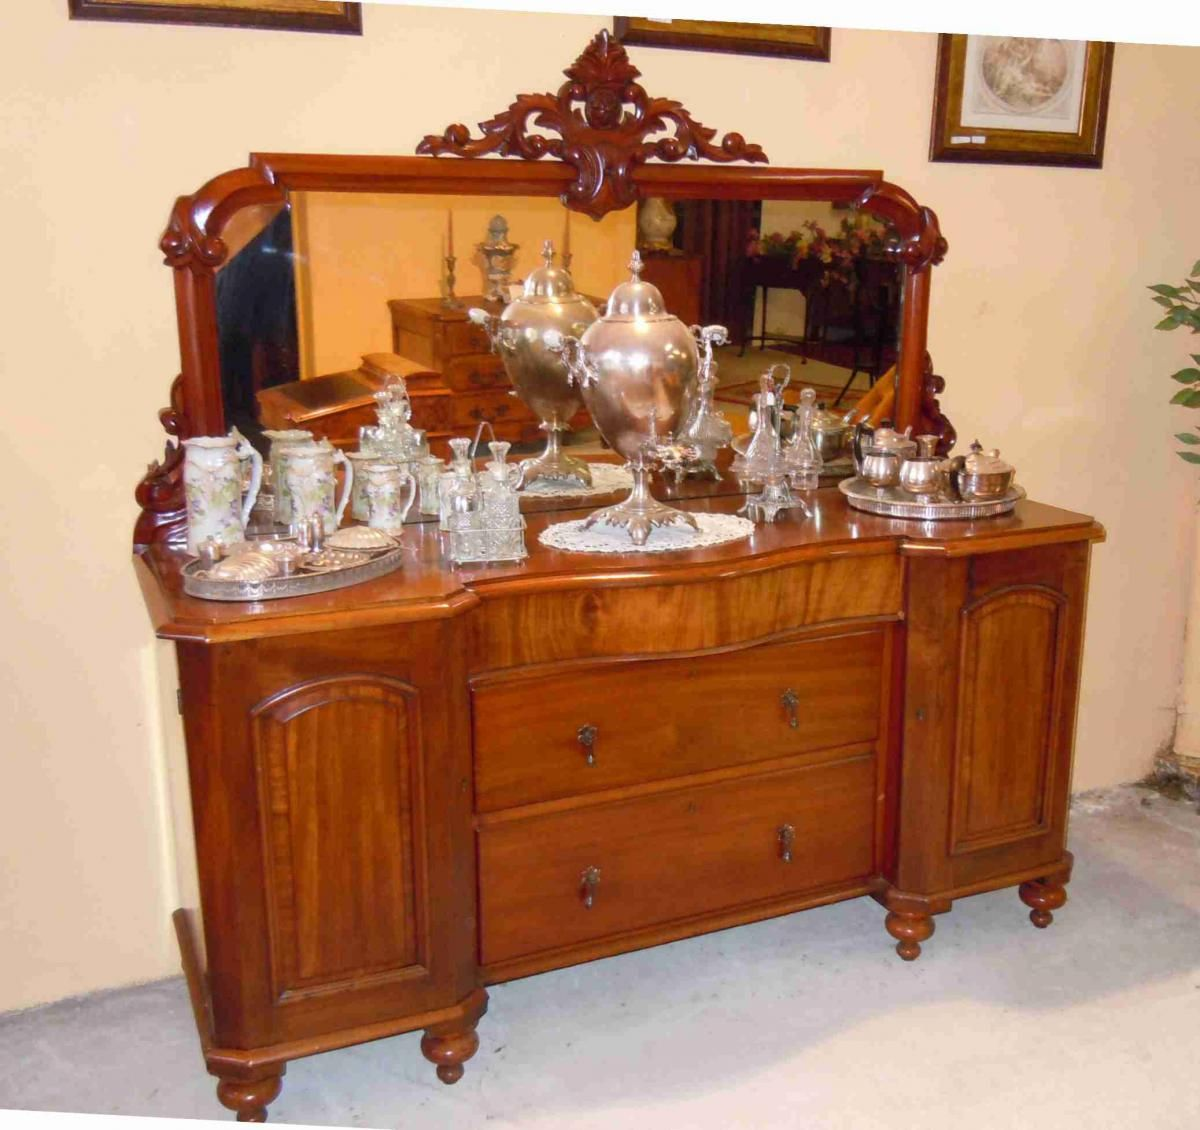 Gorgeous Original Victorian Buffet Sideboard In Solid Mahogany And Psyche Mirror Mobilier Ancien Mobilier De Salon Mobilier